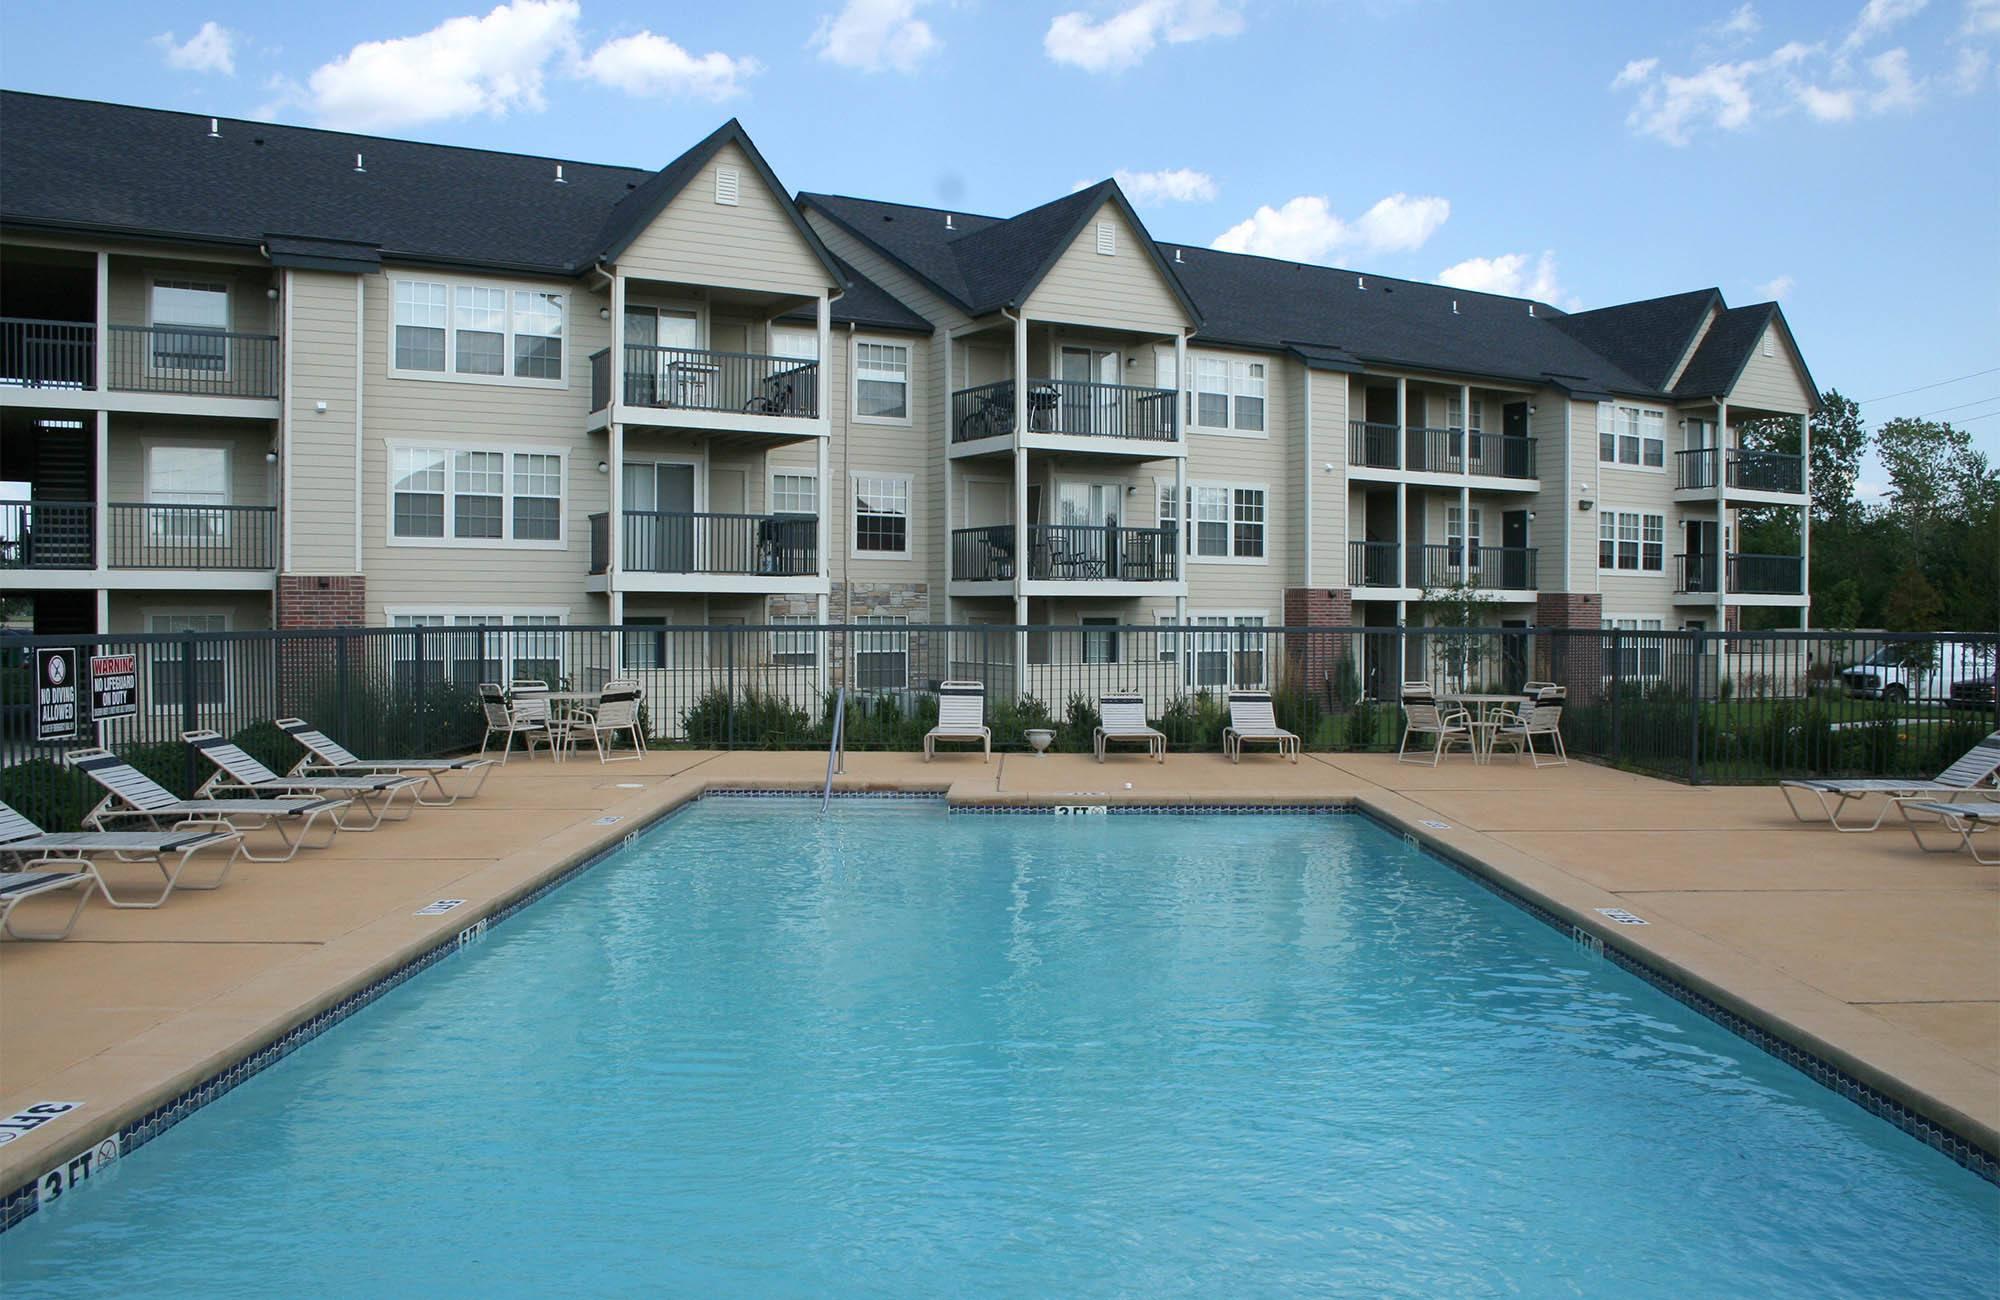 Our apartments in Wichita will enchant you